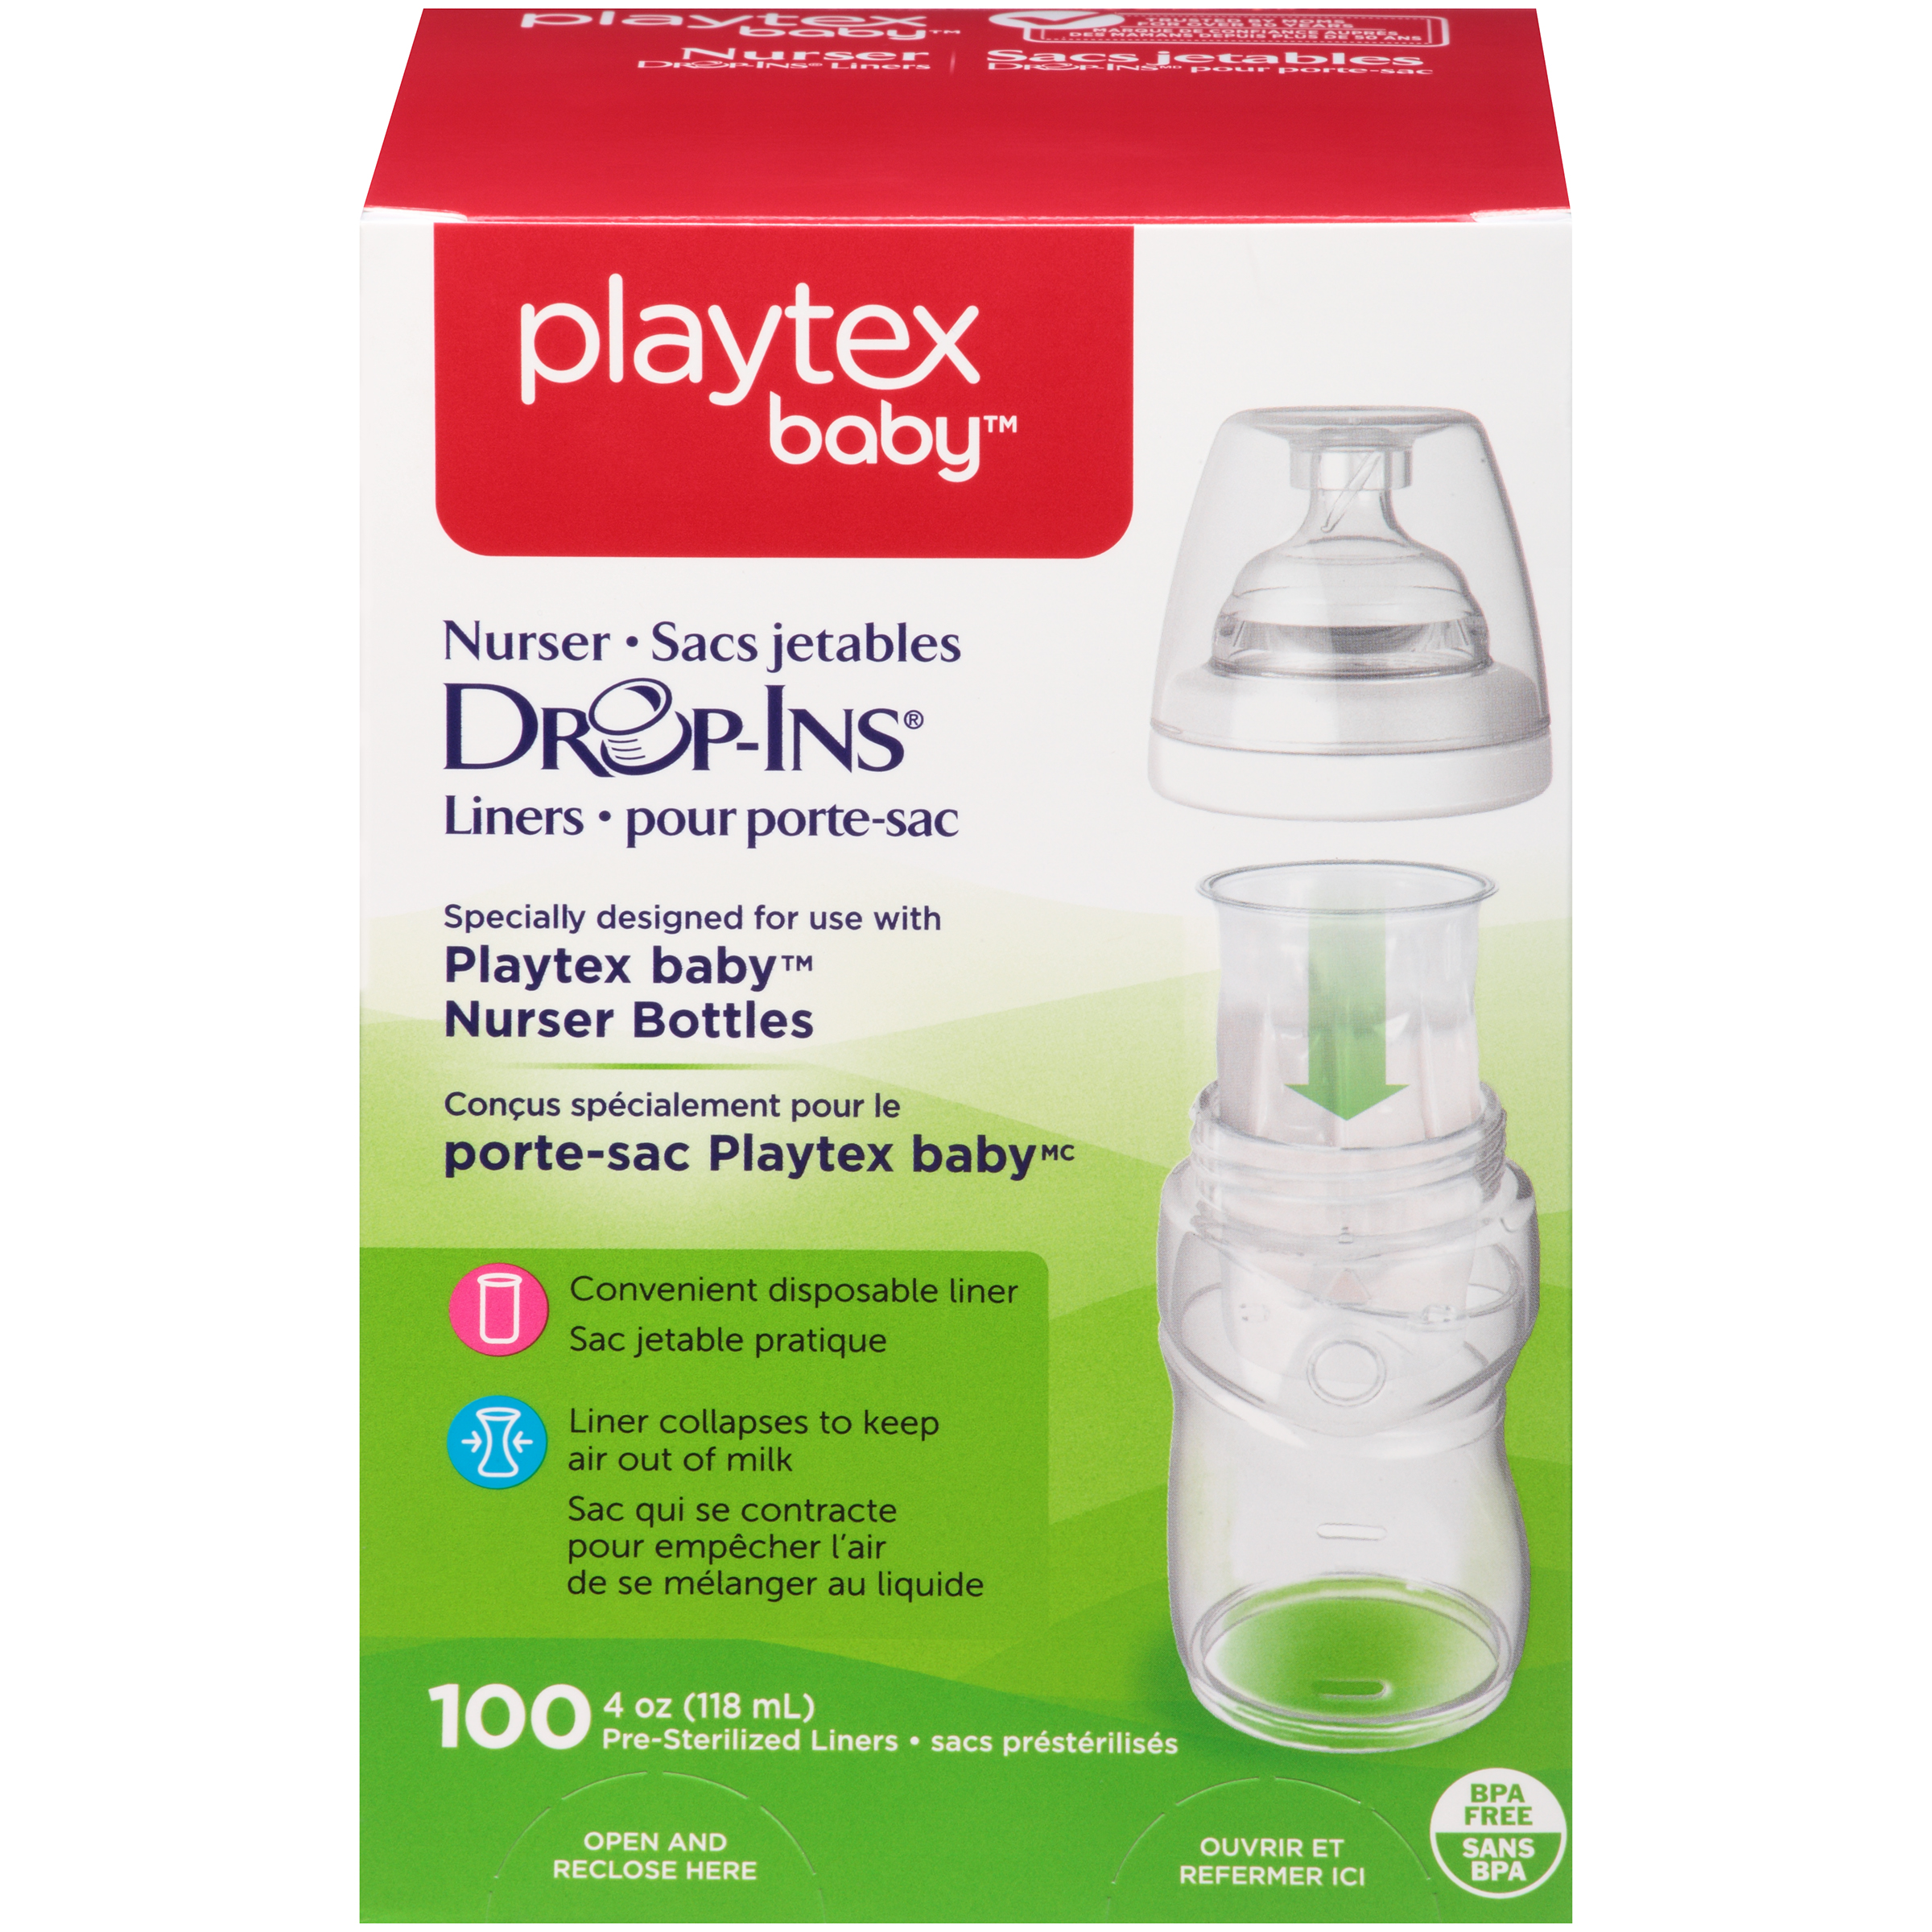 Playtex Baby Drop-Ins Liners For Playtex Baby Nurser Bottles 4-6oz 100 count